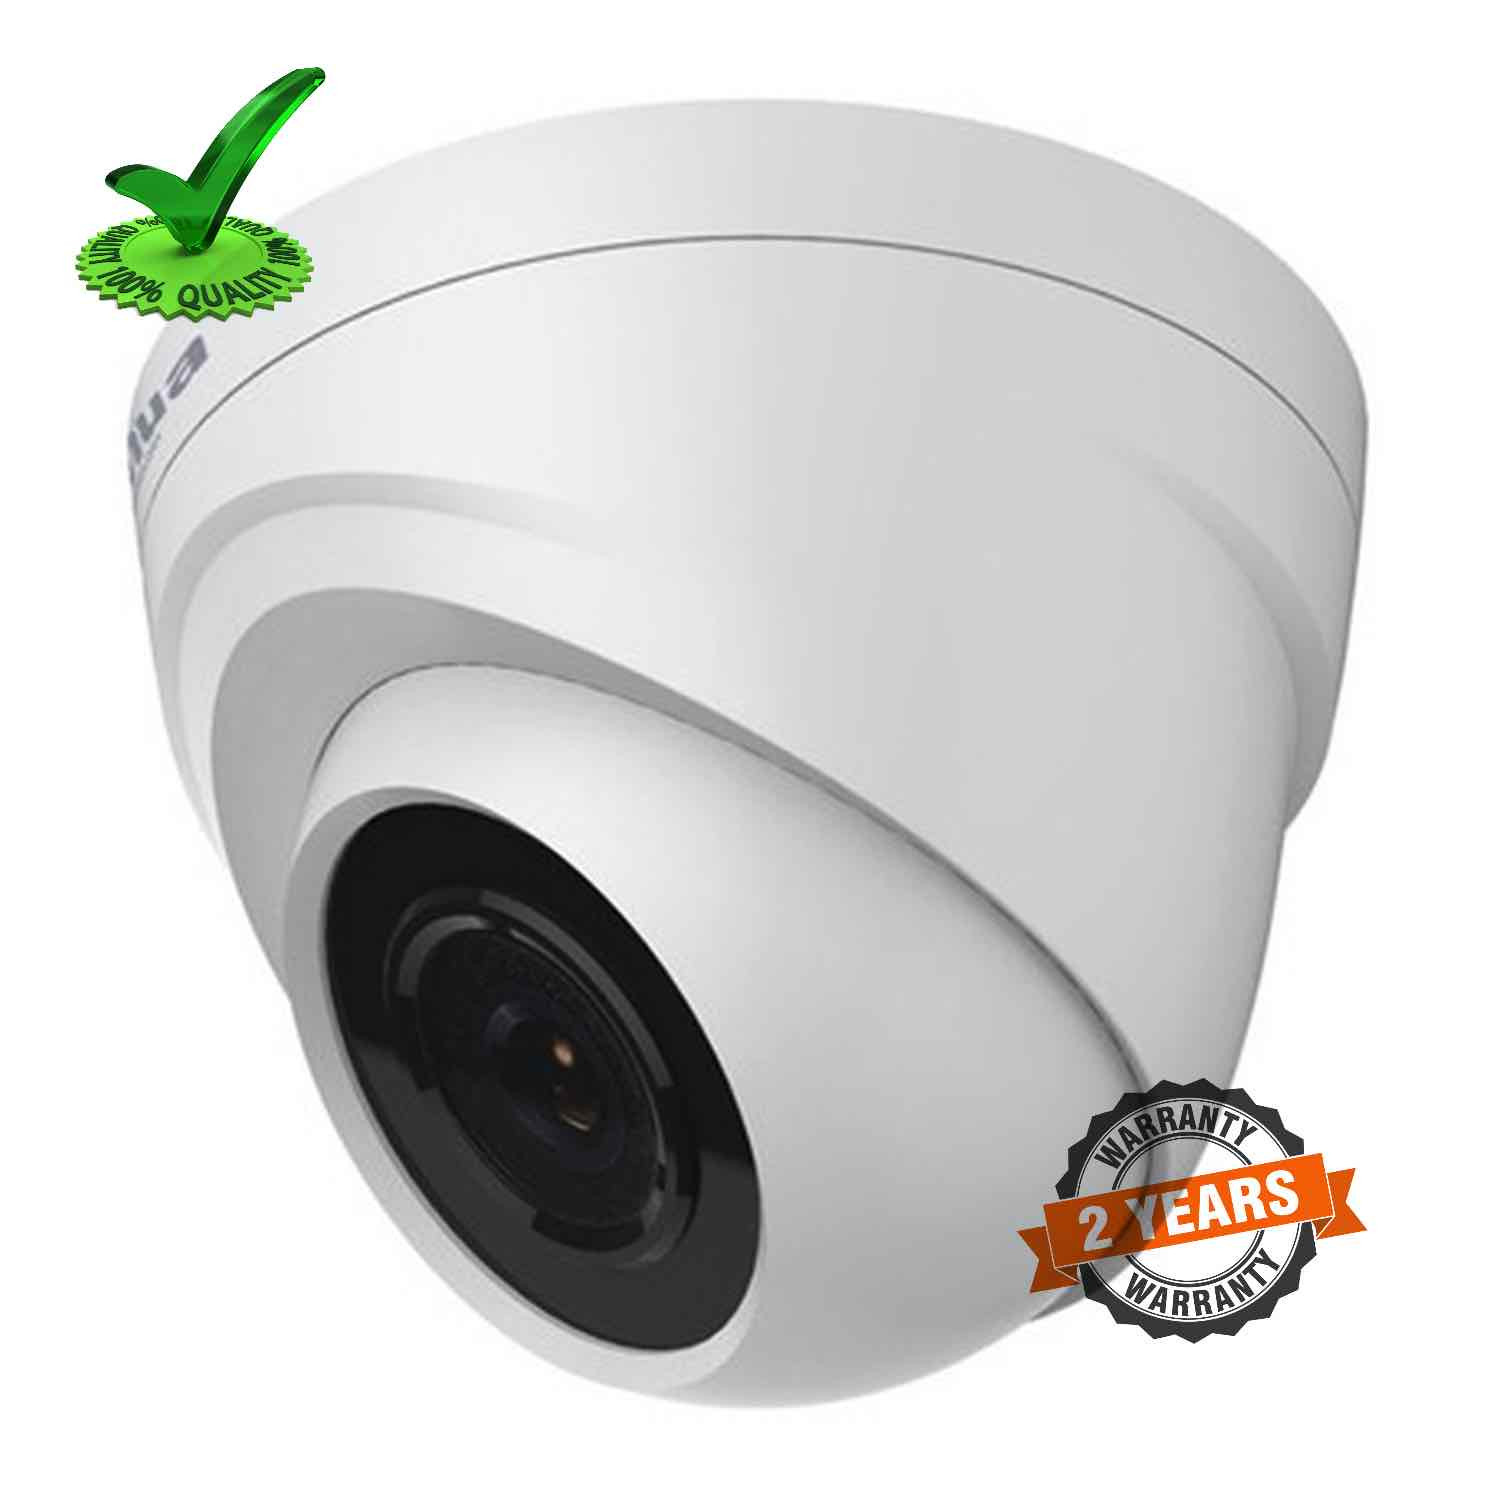 Dahua DH-HAC-T1A21P 2mp Indoor Dome Camera